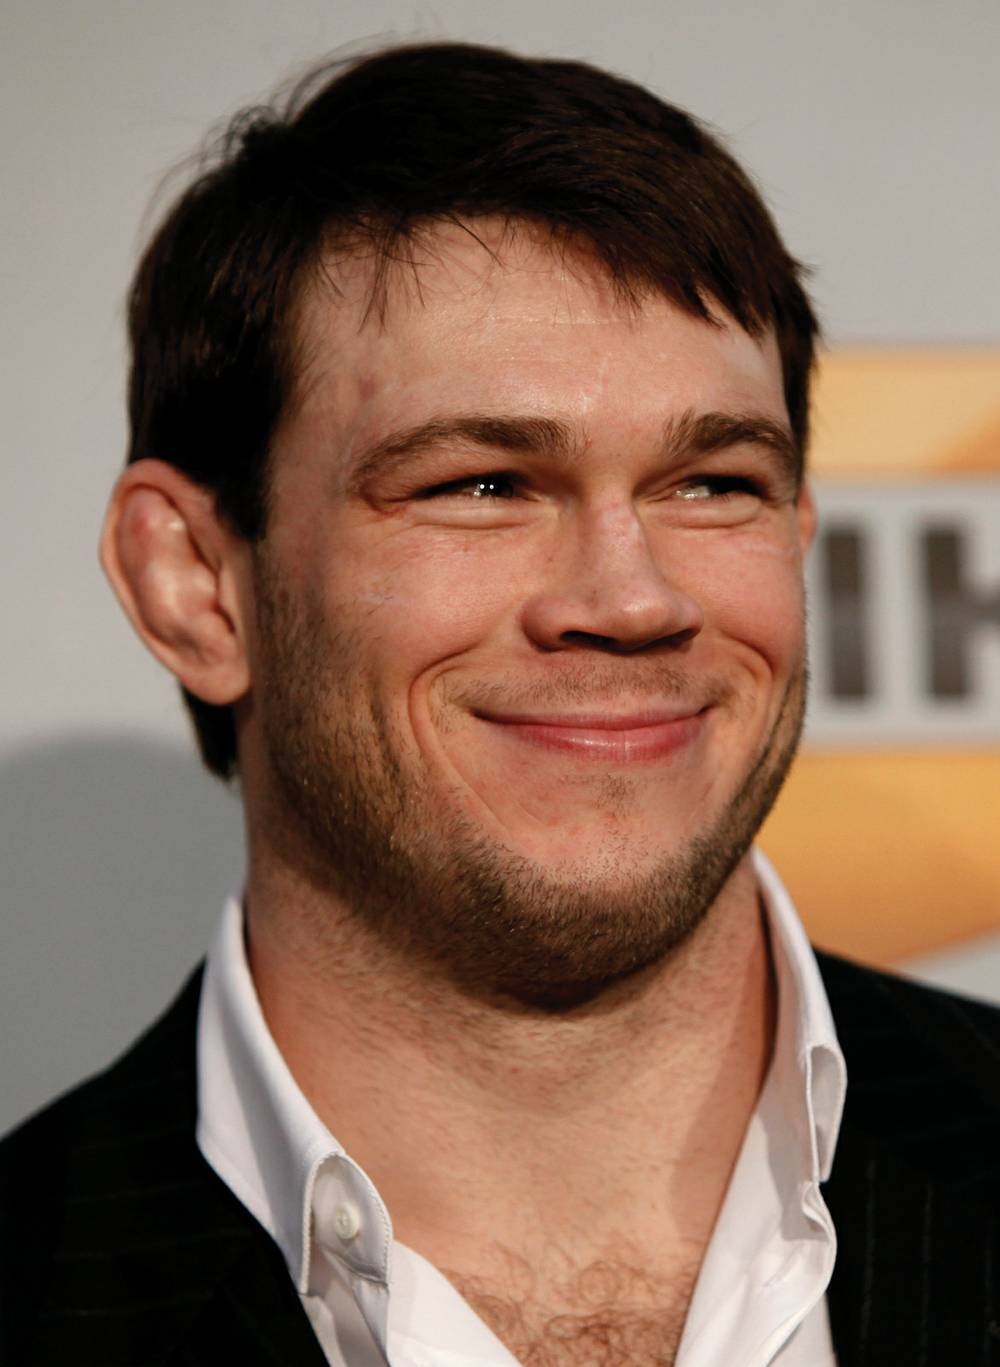 Ufc Hall Of Famer Forrest Griffin Puts A Strong Face On